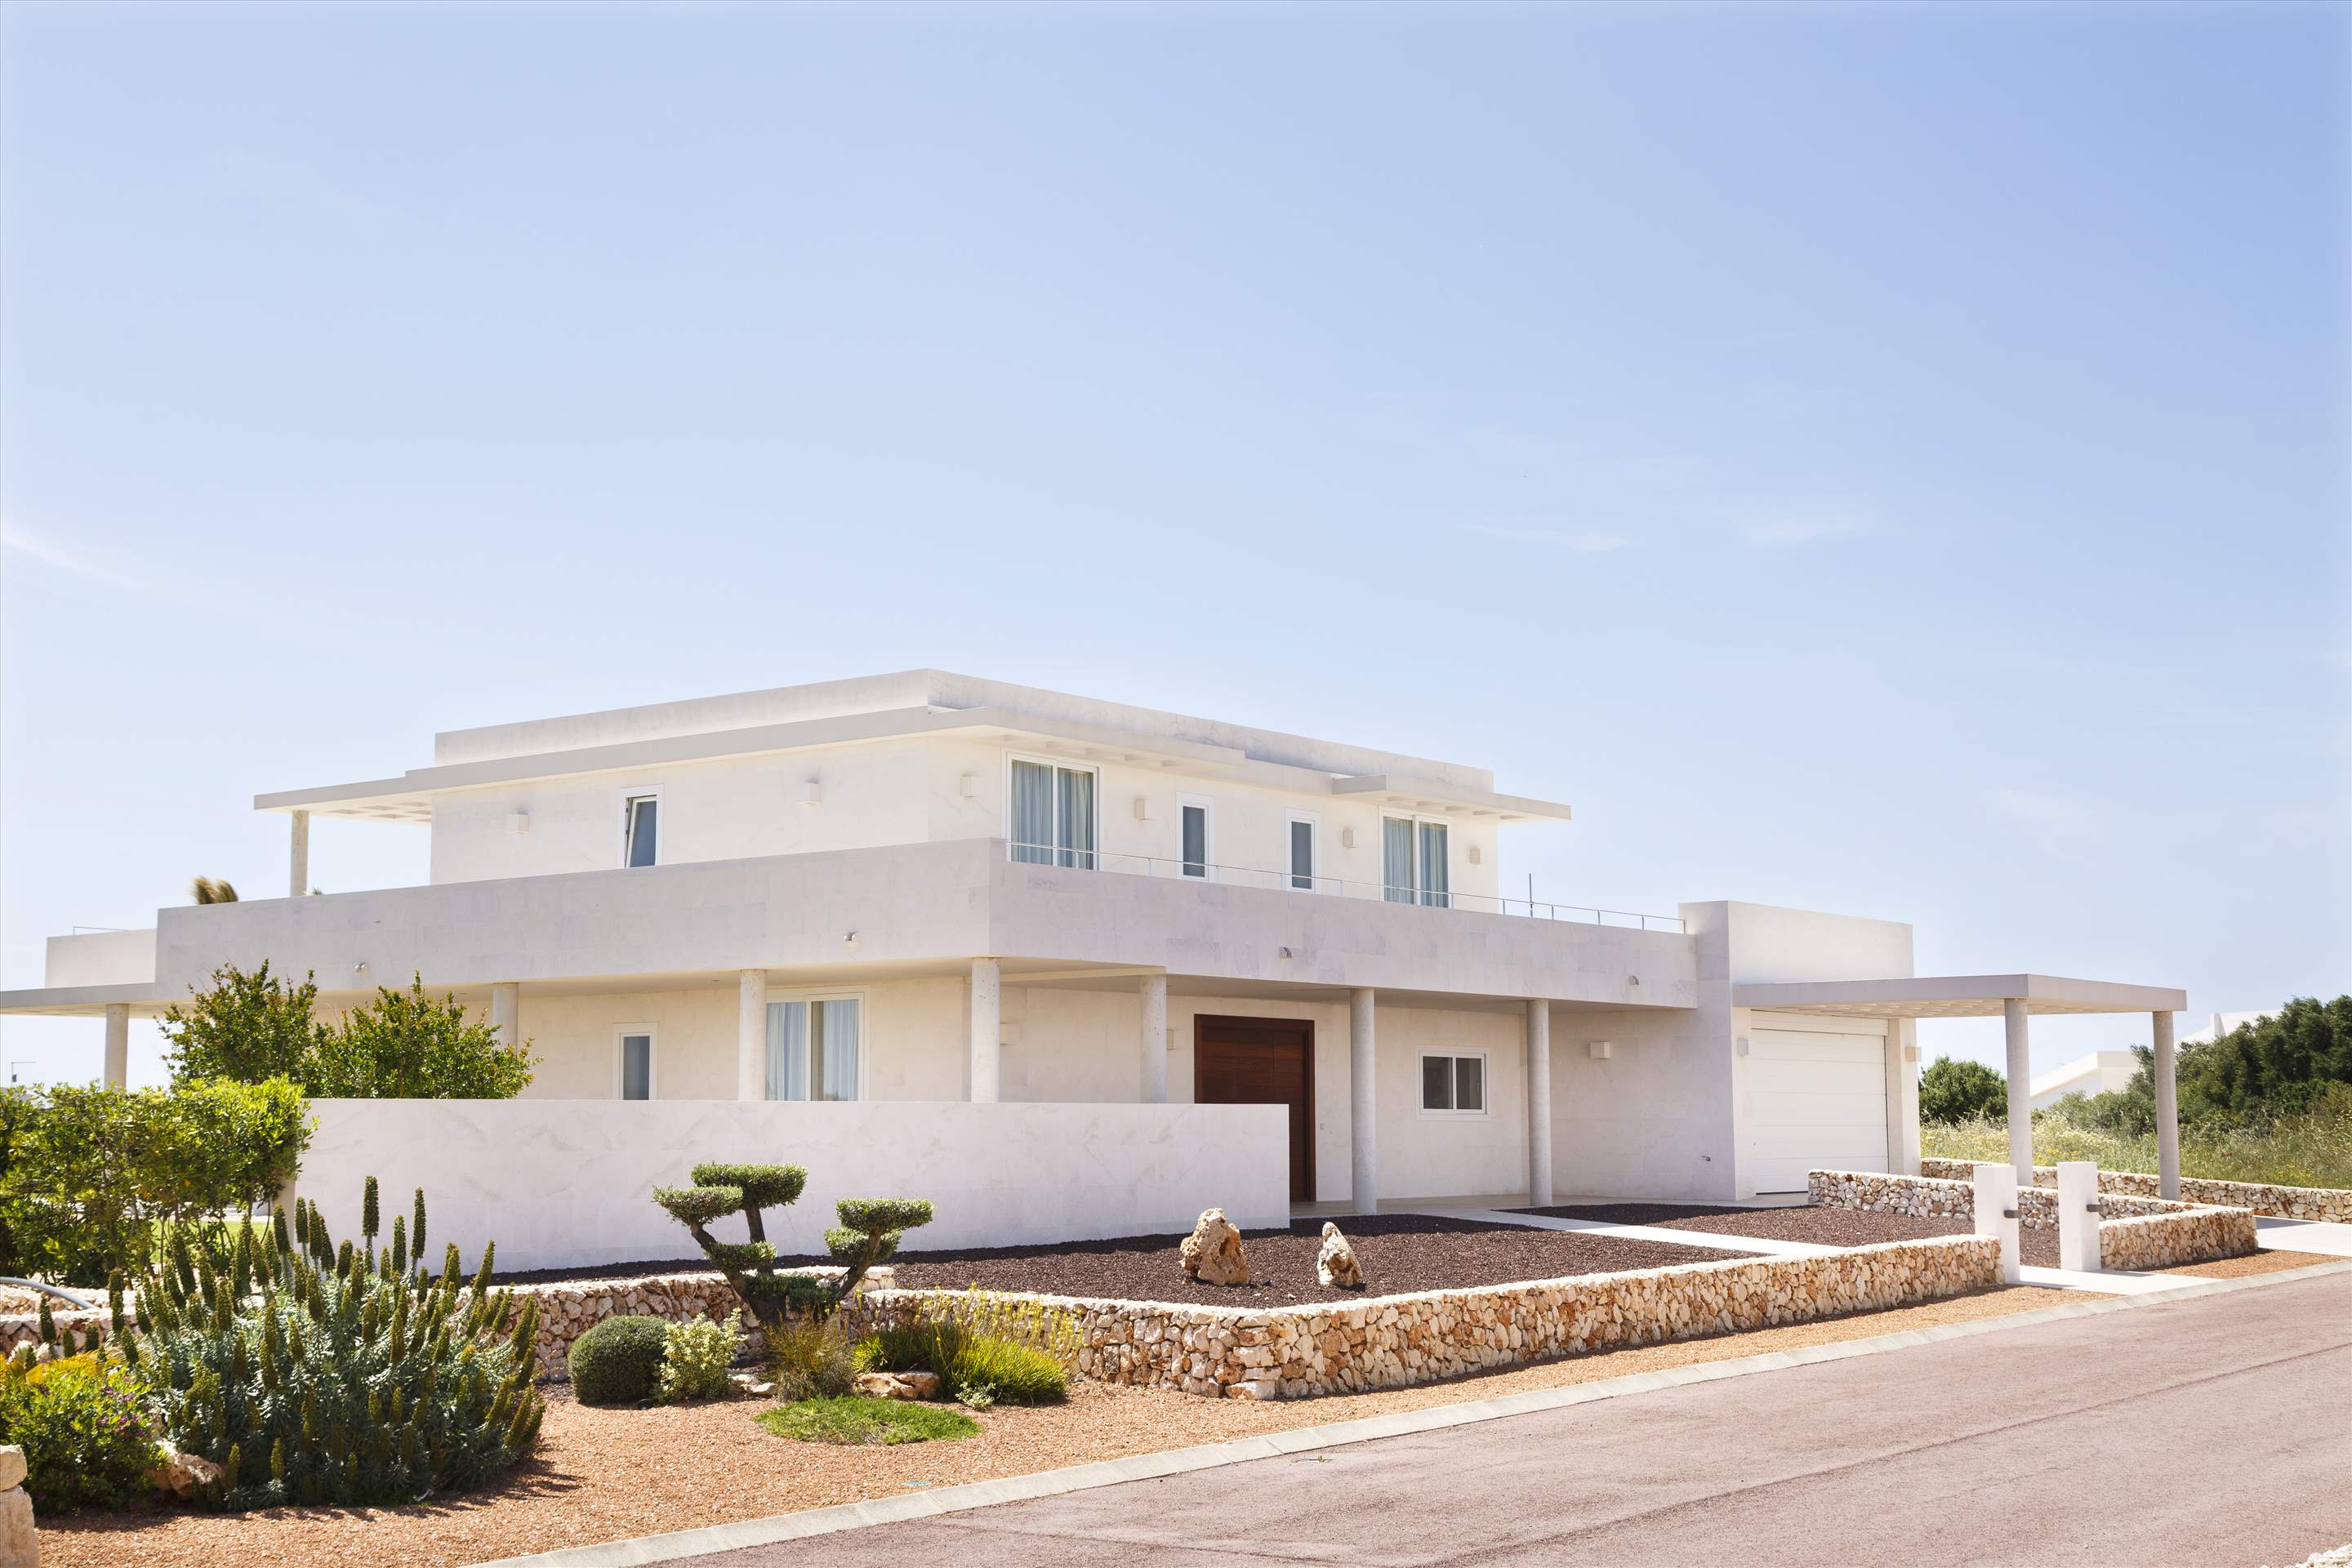 Binibeca Hills , 5 bedroom, 5 bedroom villa in Mahon, San Luis & South East, Menorca Photo #10